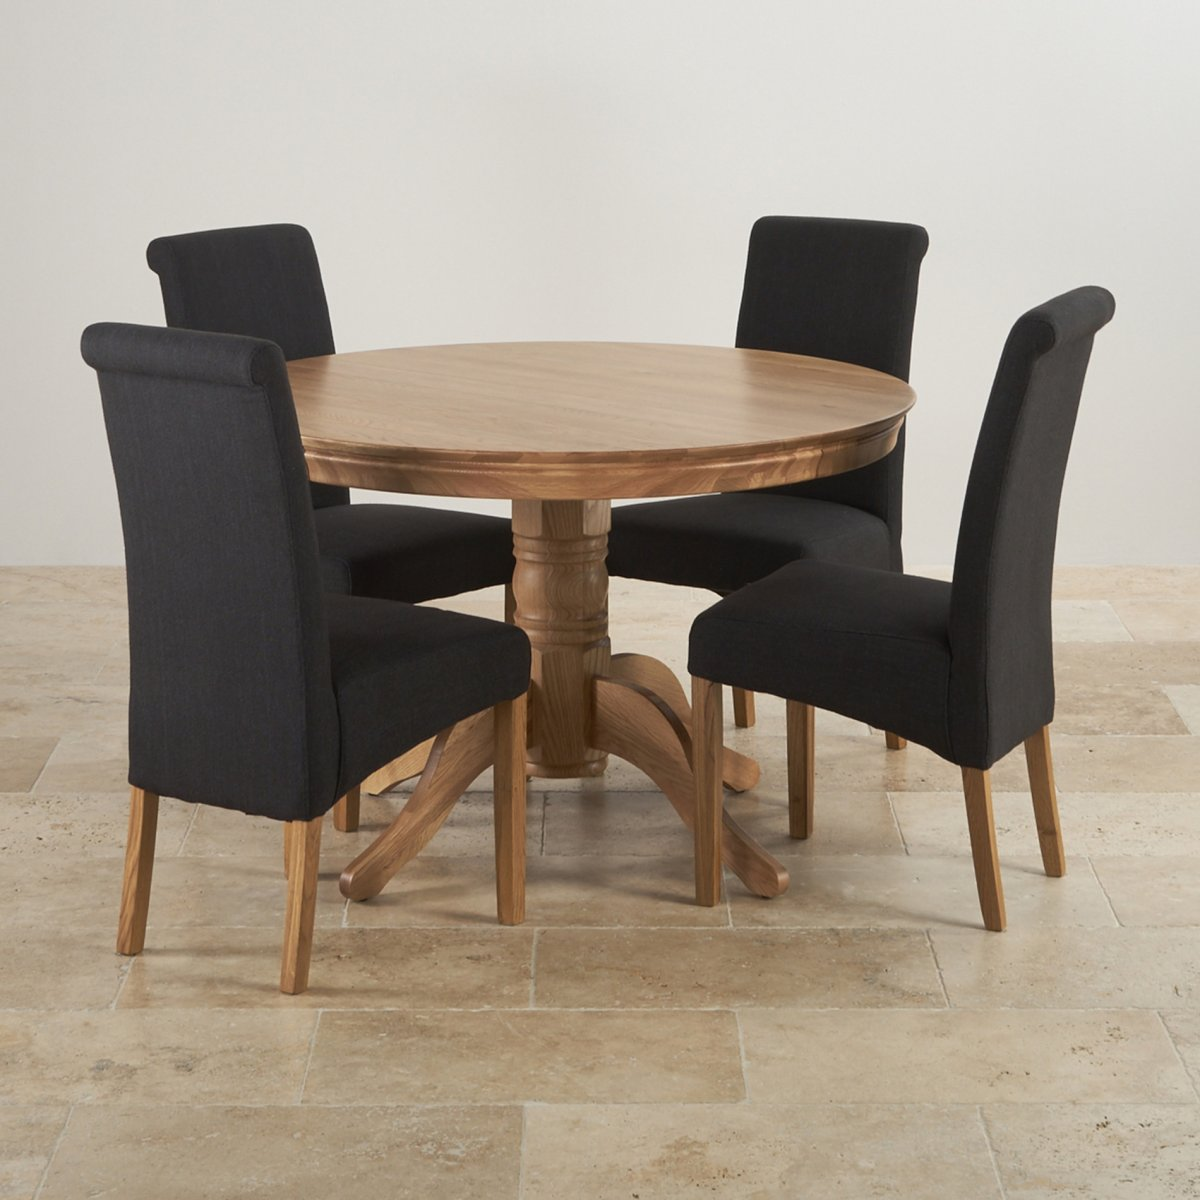 4ft round dining table in natural oak 4 black fabric chairs. Black Bedroom Furniture Sets. Home Design Ideas